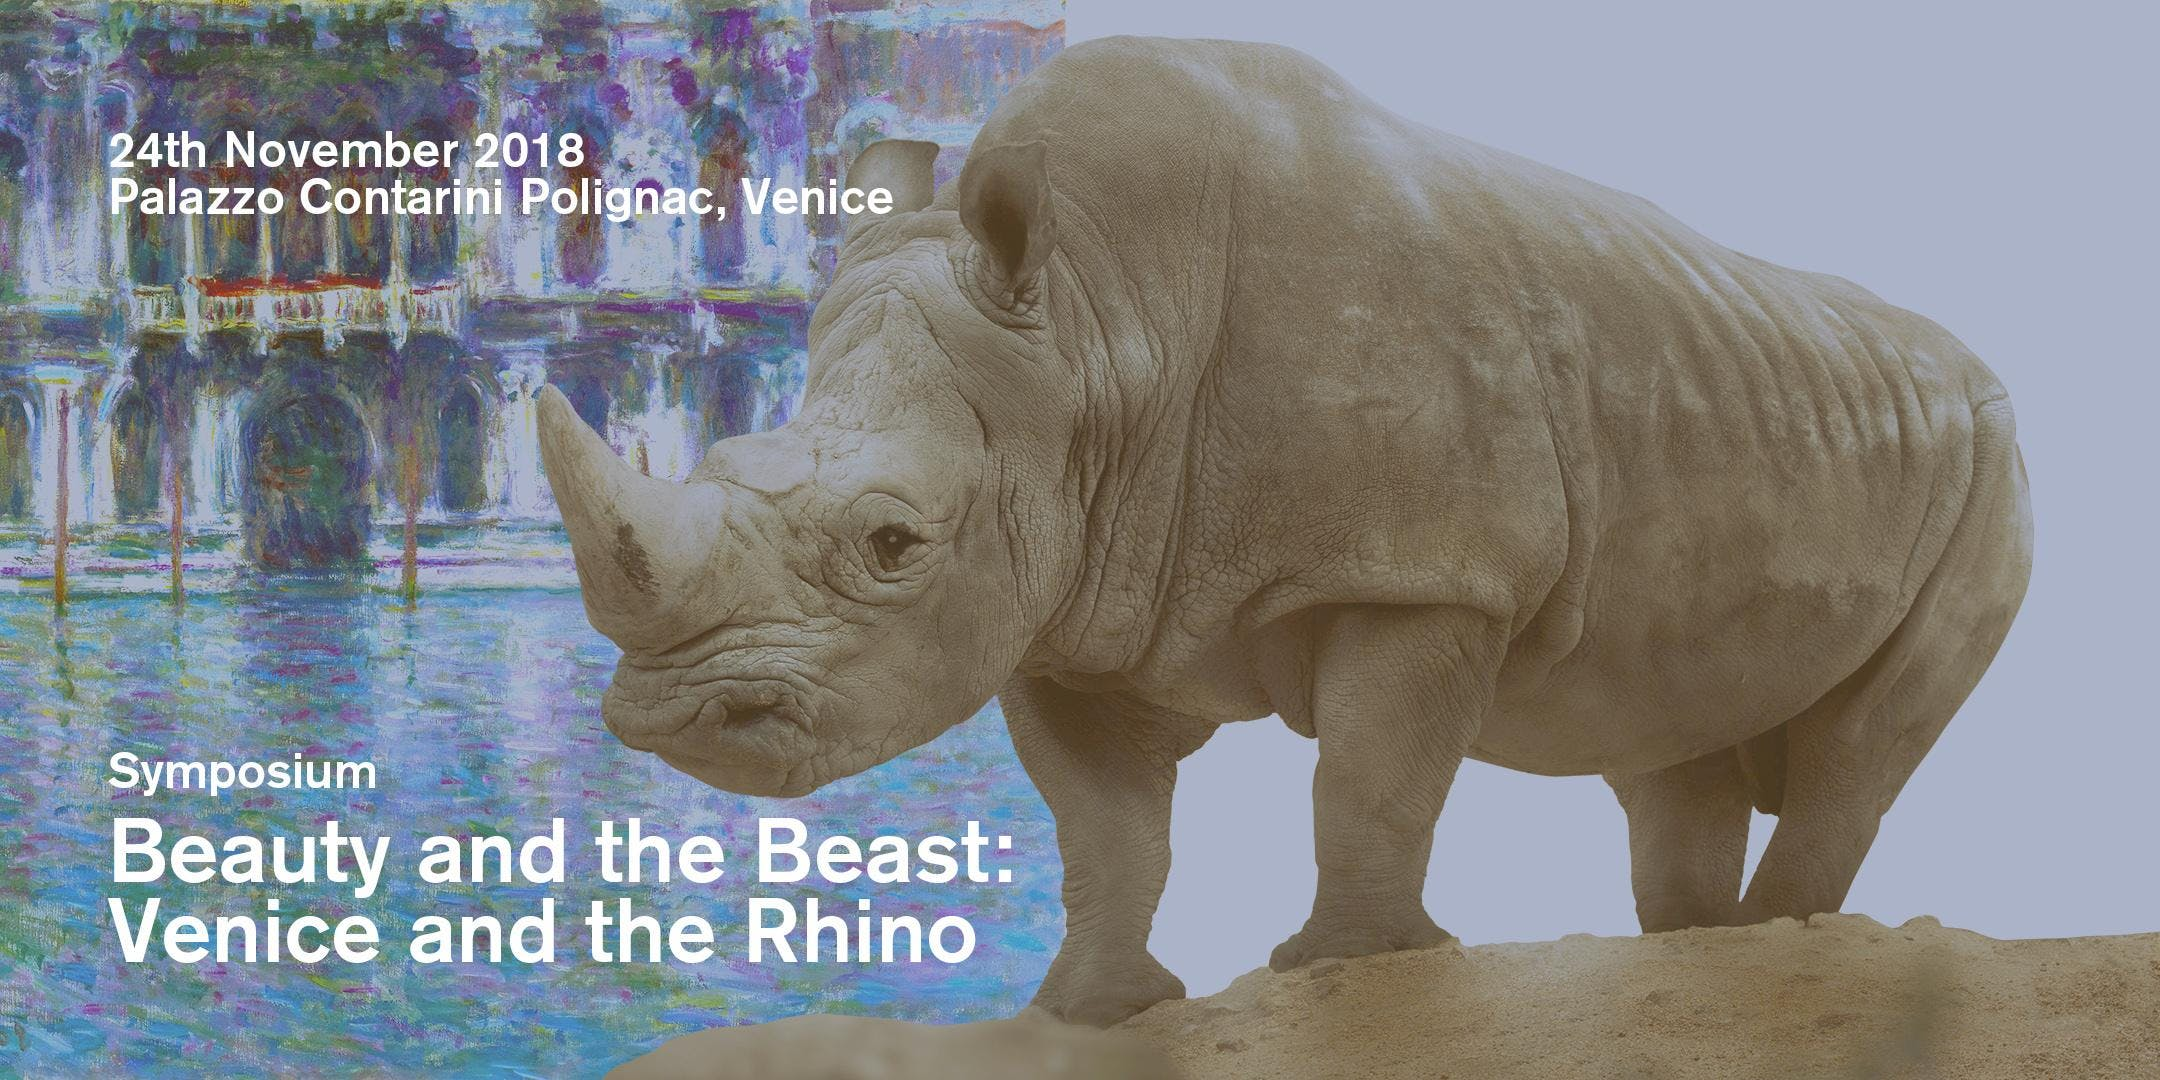 Beauty and the Beast: Venice and the Rhino. A Symposium